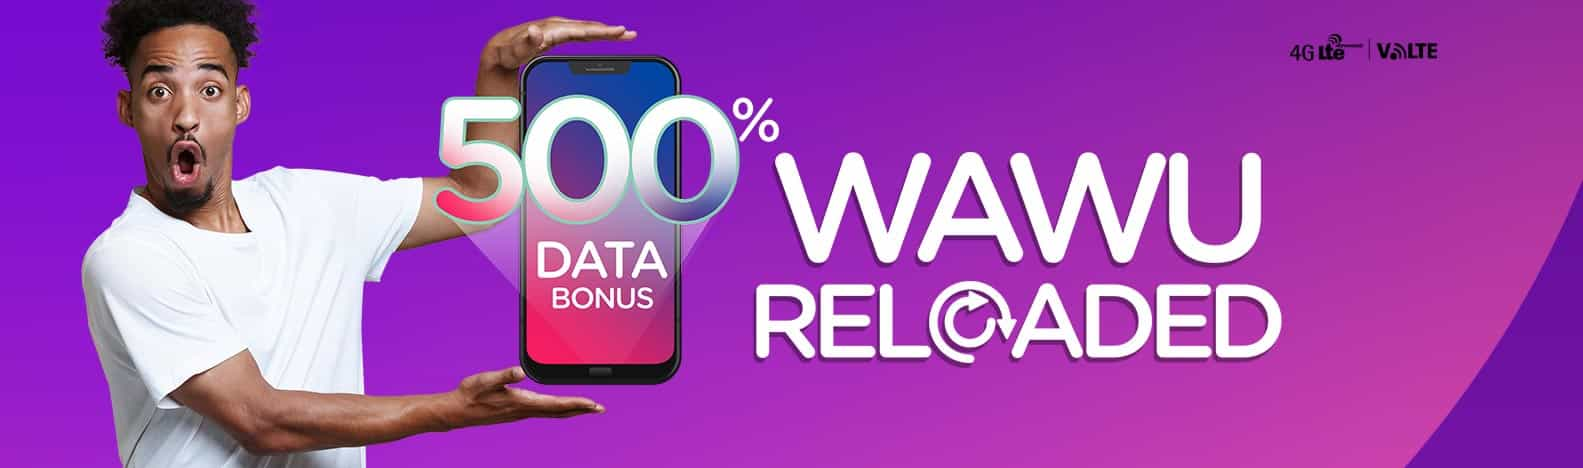 Ntel 500% Wawu Data Reloaded